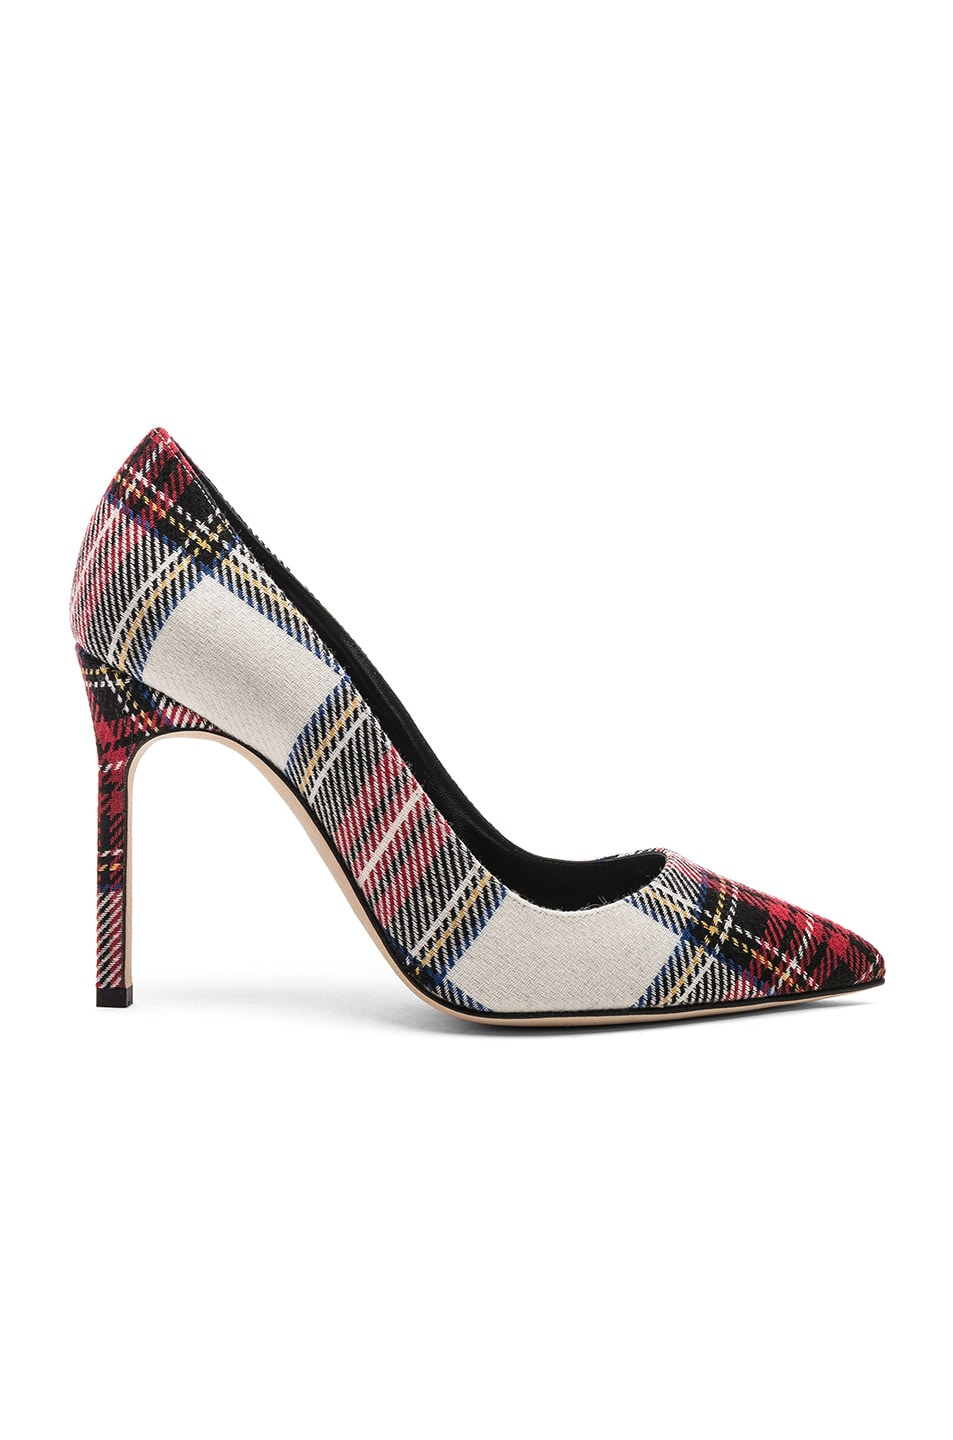 Image 1 of Manolo Blahnik BB 105 Pux Heel in White, Red & Black